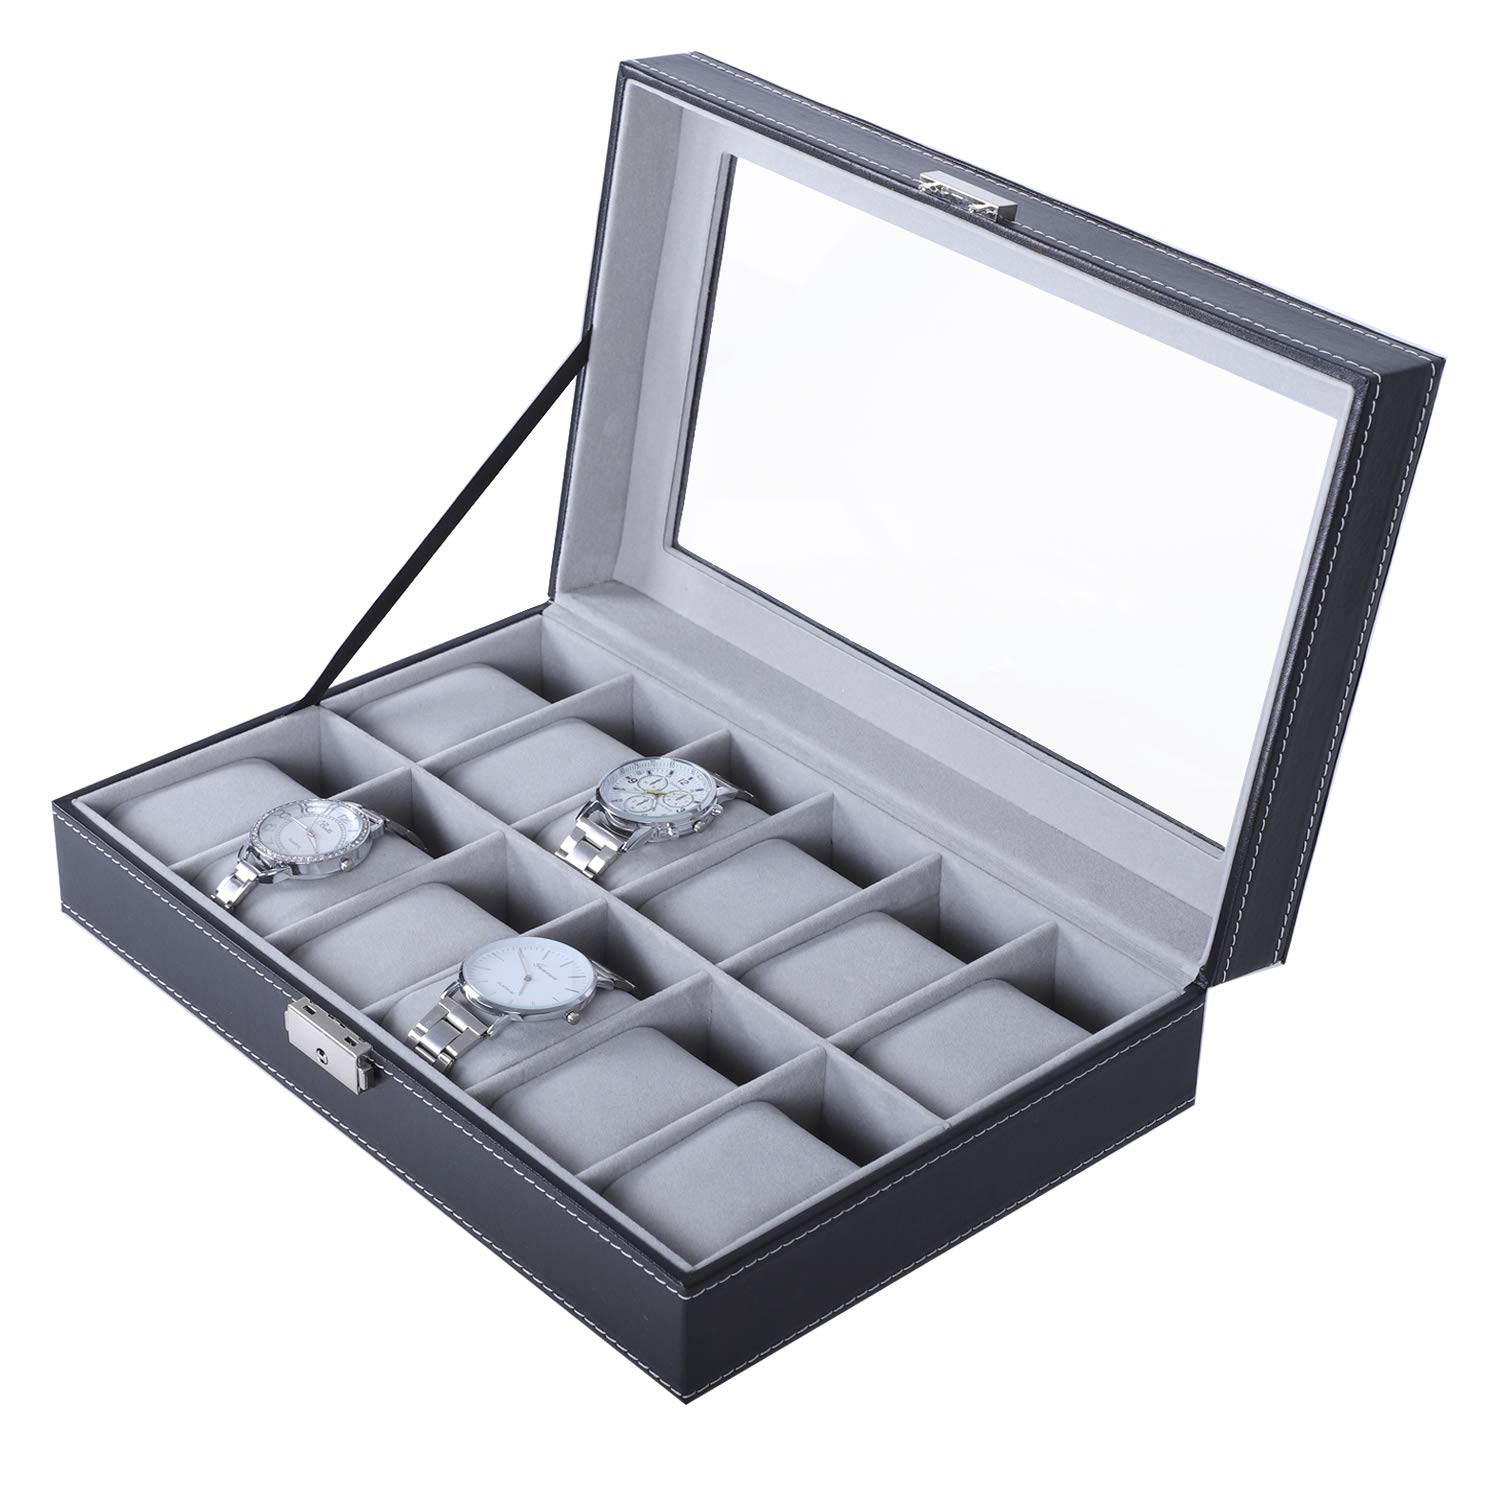 Other Retail Jewelry Displays Jewelry & Watches Reliable Faux Leather Watch Case Storage Display Box Organiser Jewelery Glass Top